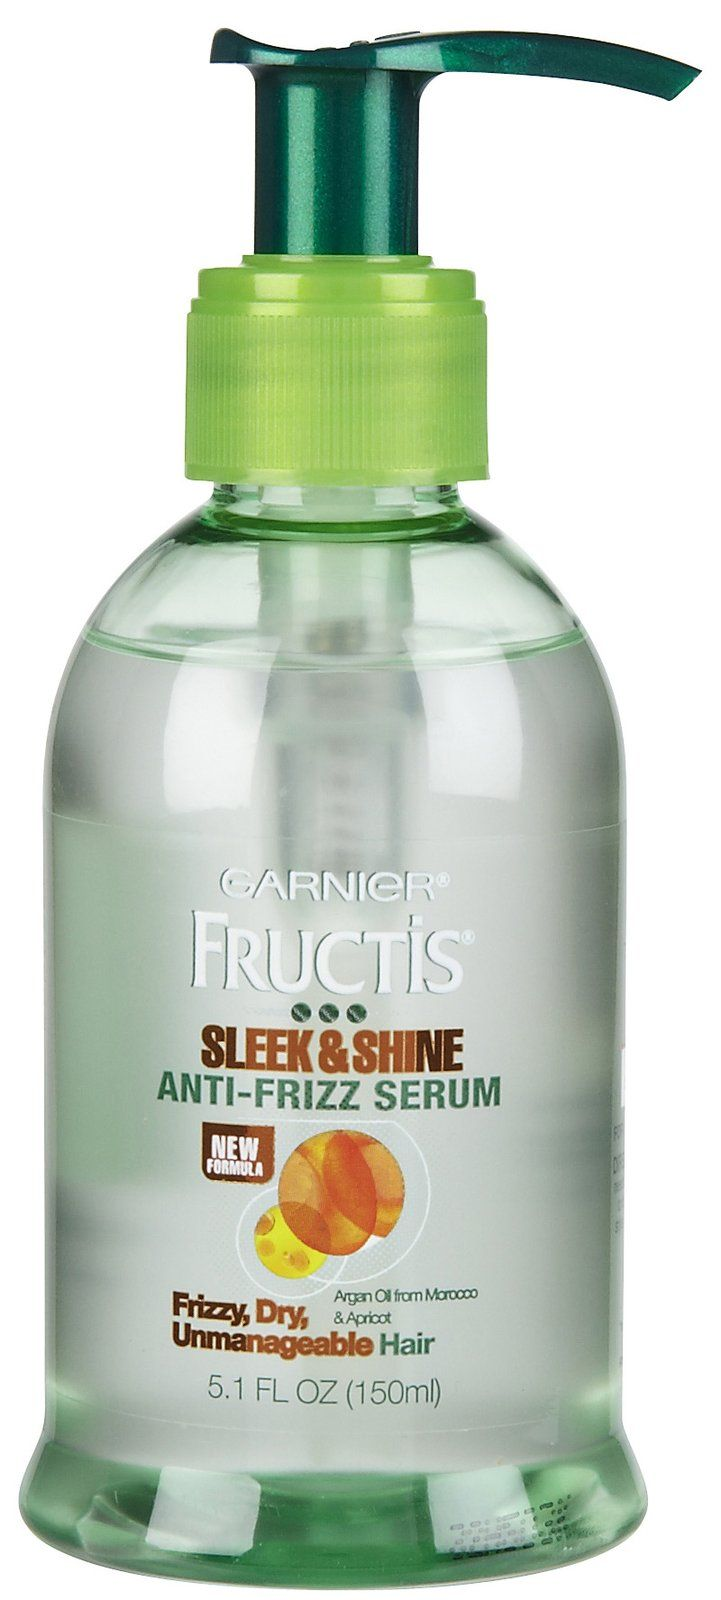 Garnier Fructis Sleek & Shine Anti-Frizz Serum - love this stuff!  Used expensive serums for so long and ran out last week so bought this on a whim. It's fabulous!  Controls frizz, smooths hair, softens & shines - and doesn't make it look or feel greasy at all!!!